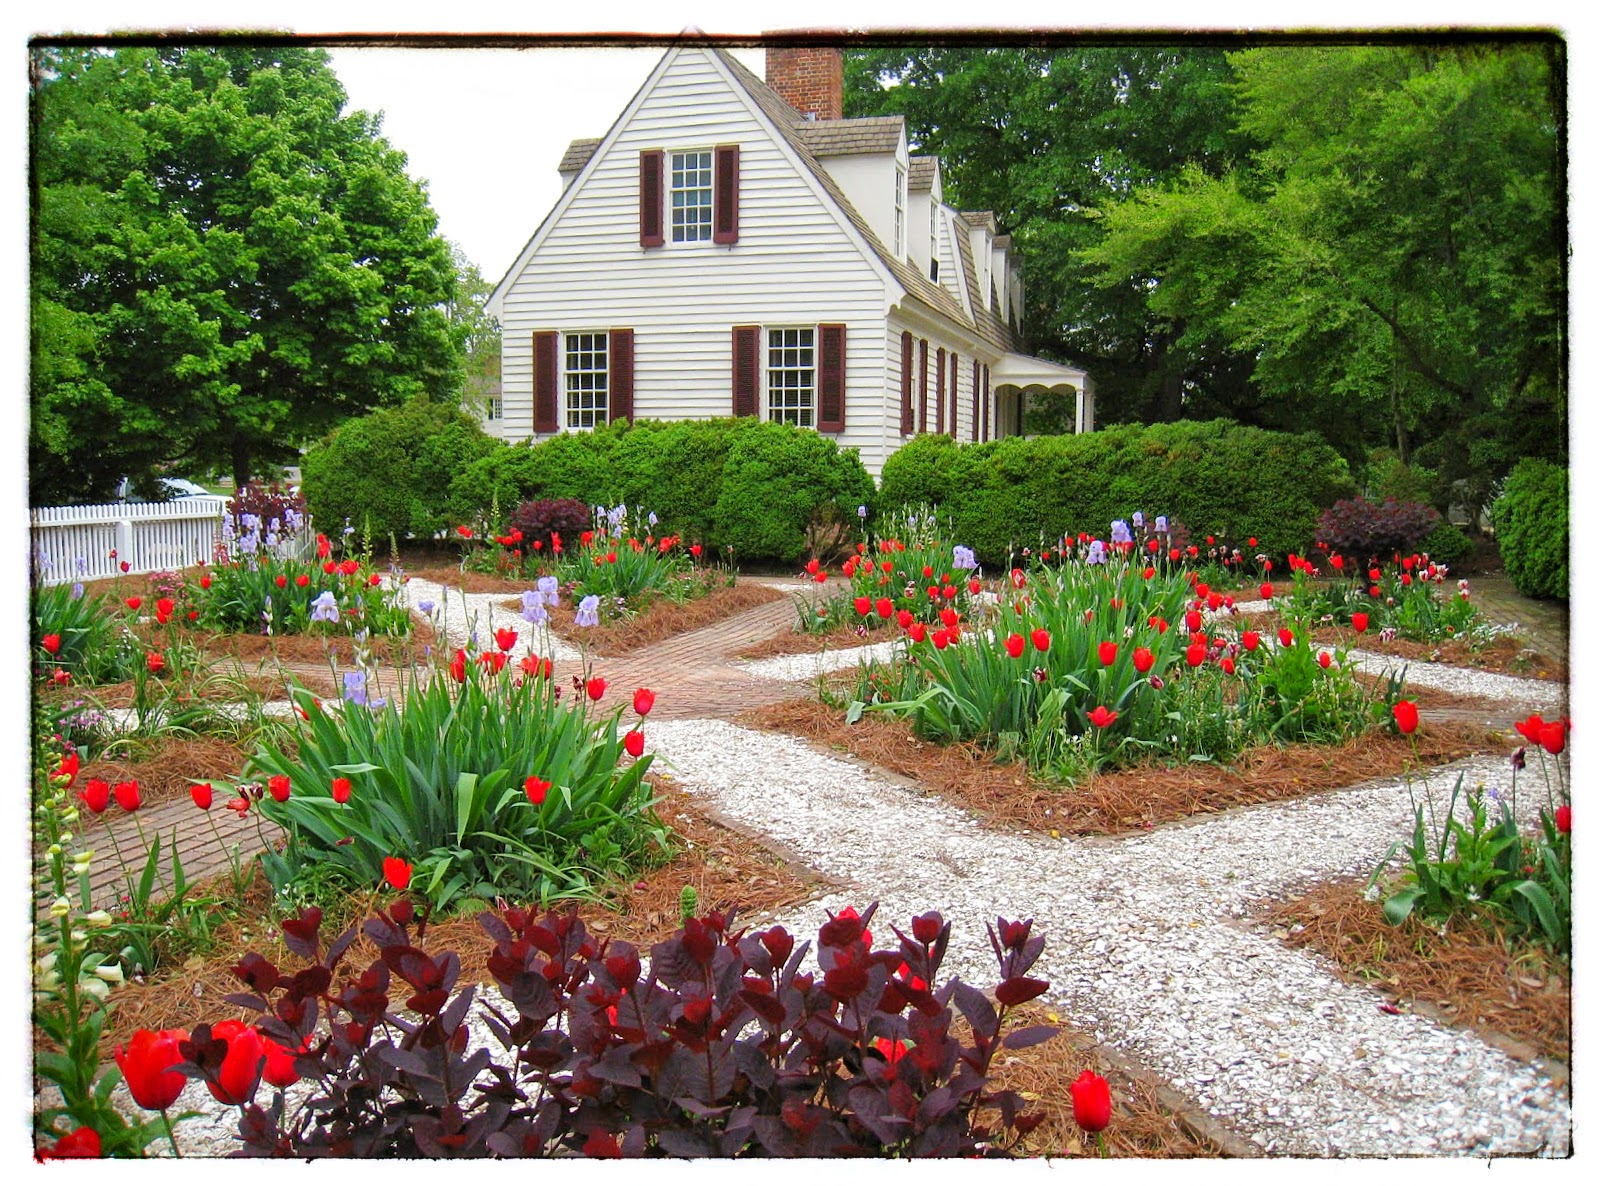 English Garden in Colonial Williamsburg via foobella.blogspot.com